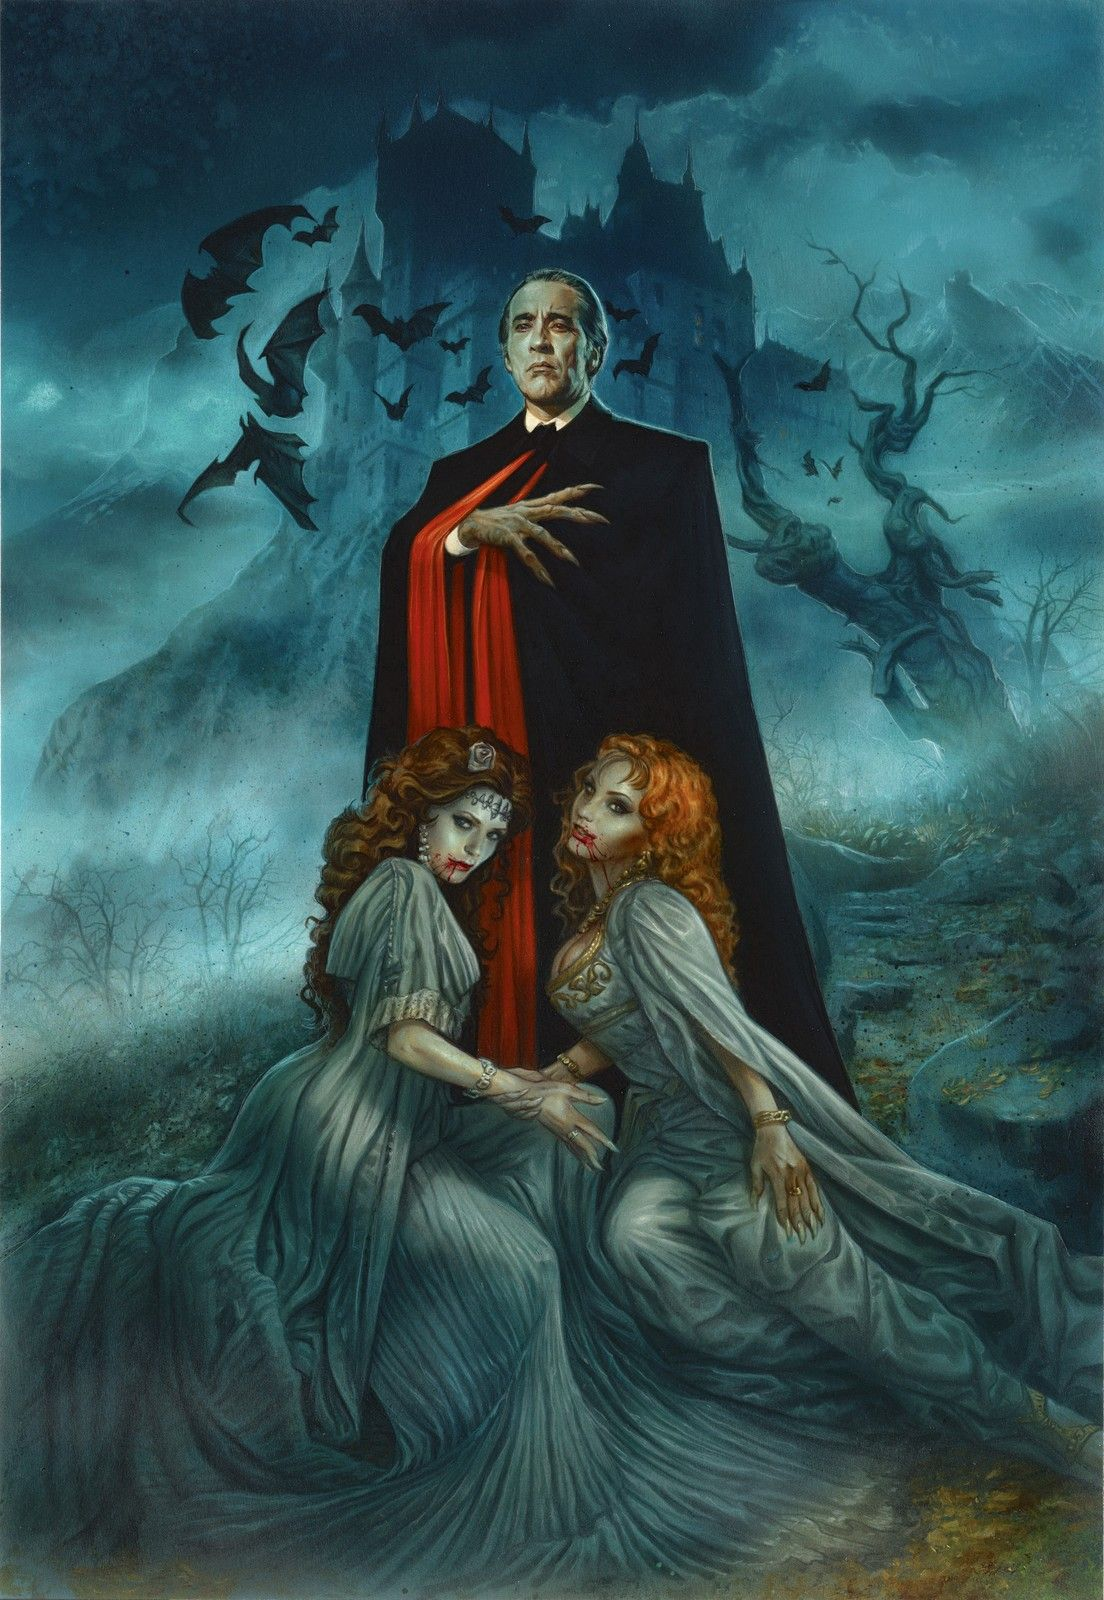 Pin by Alex Brannon on Hammer Film Productions | Dracula art, Vampire art,  Hammer horror films